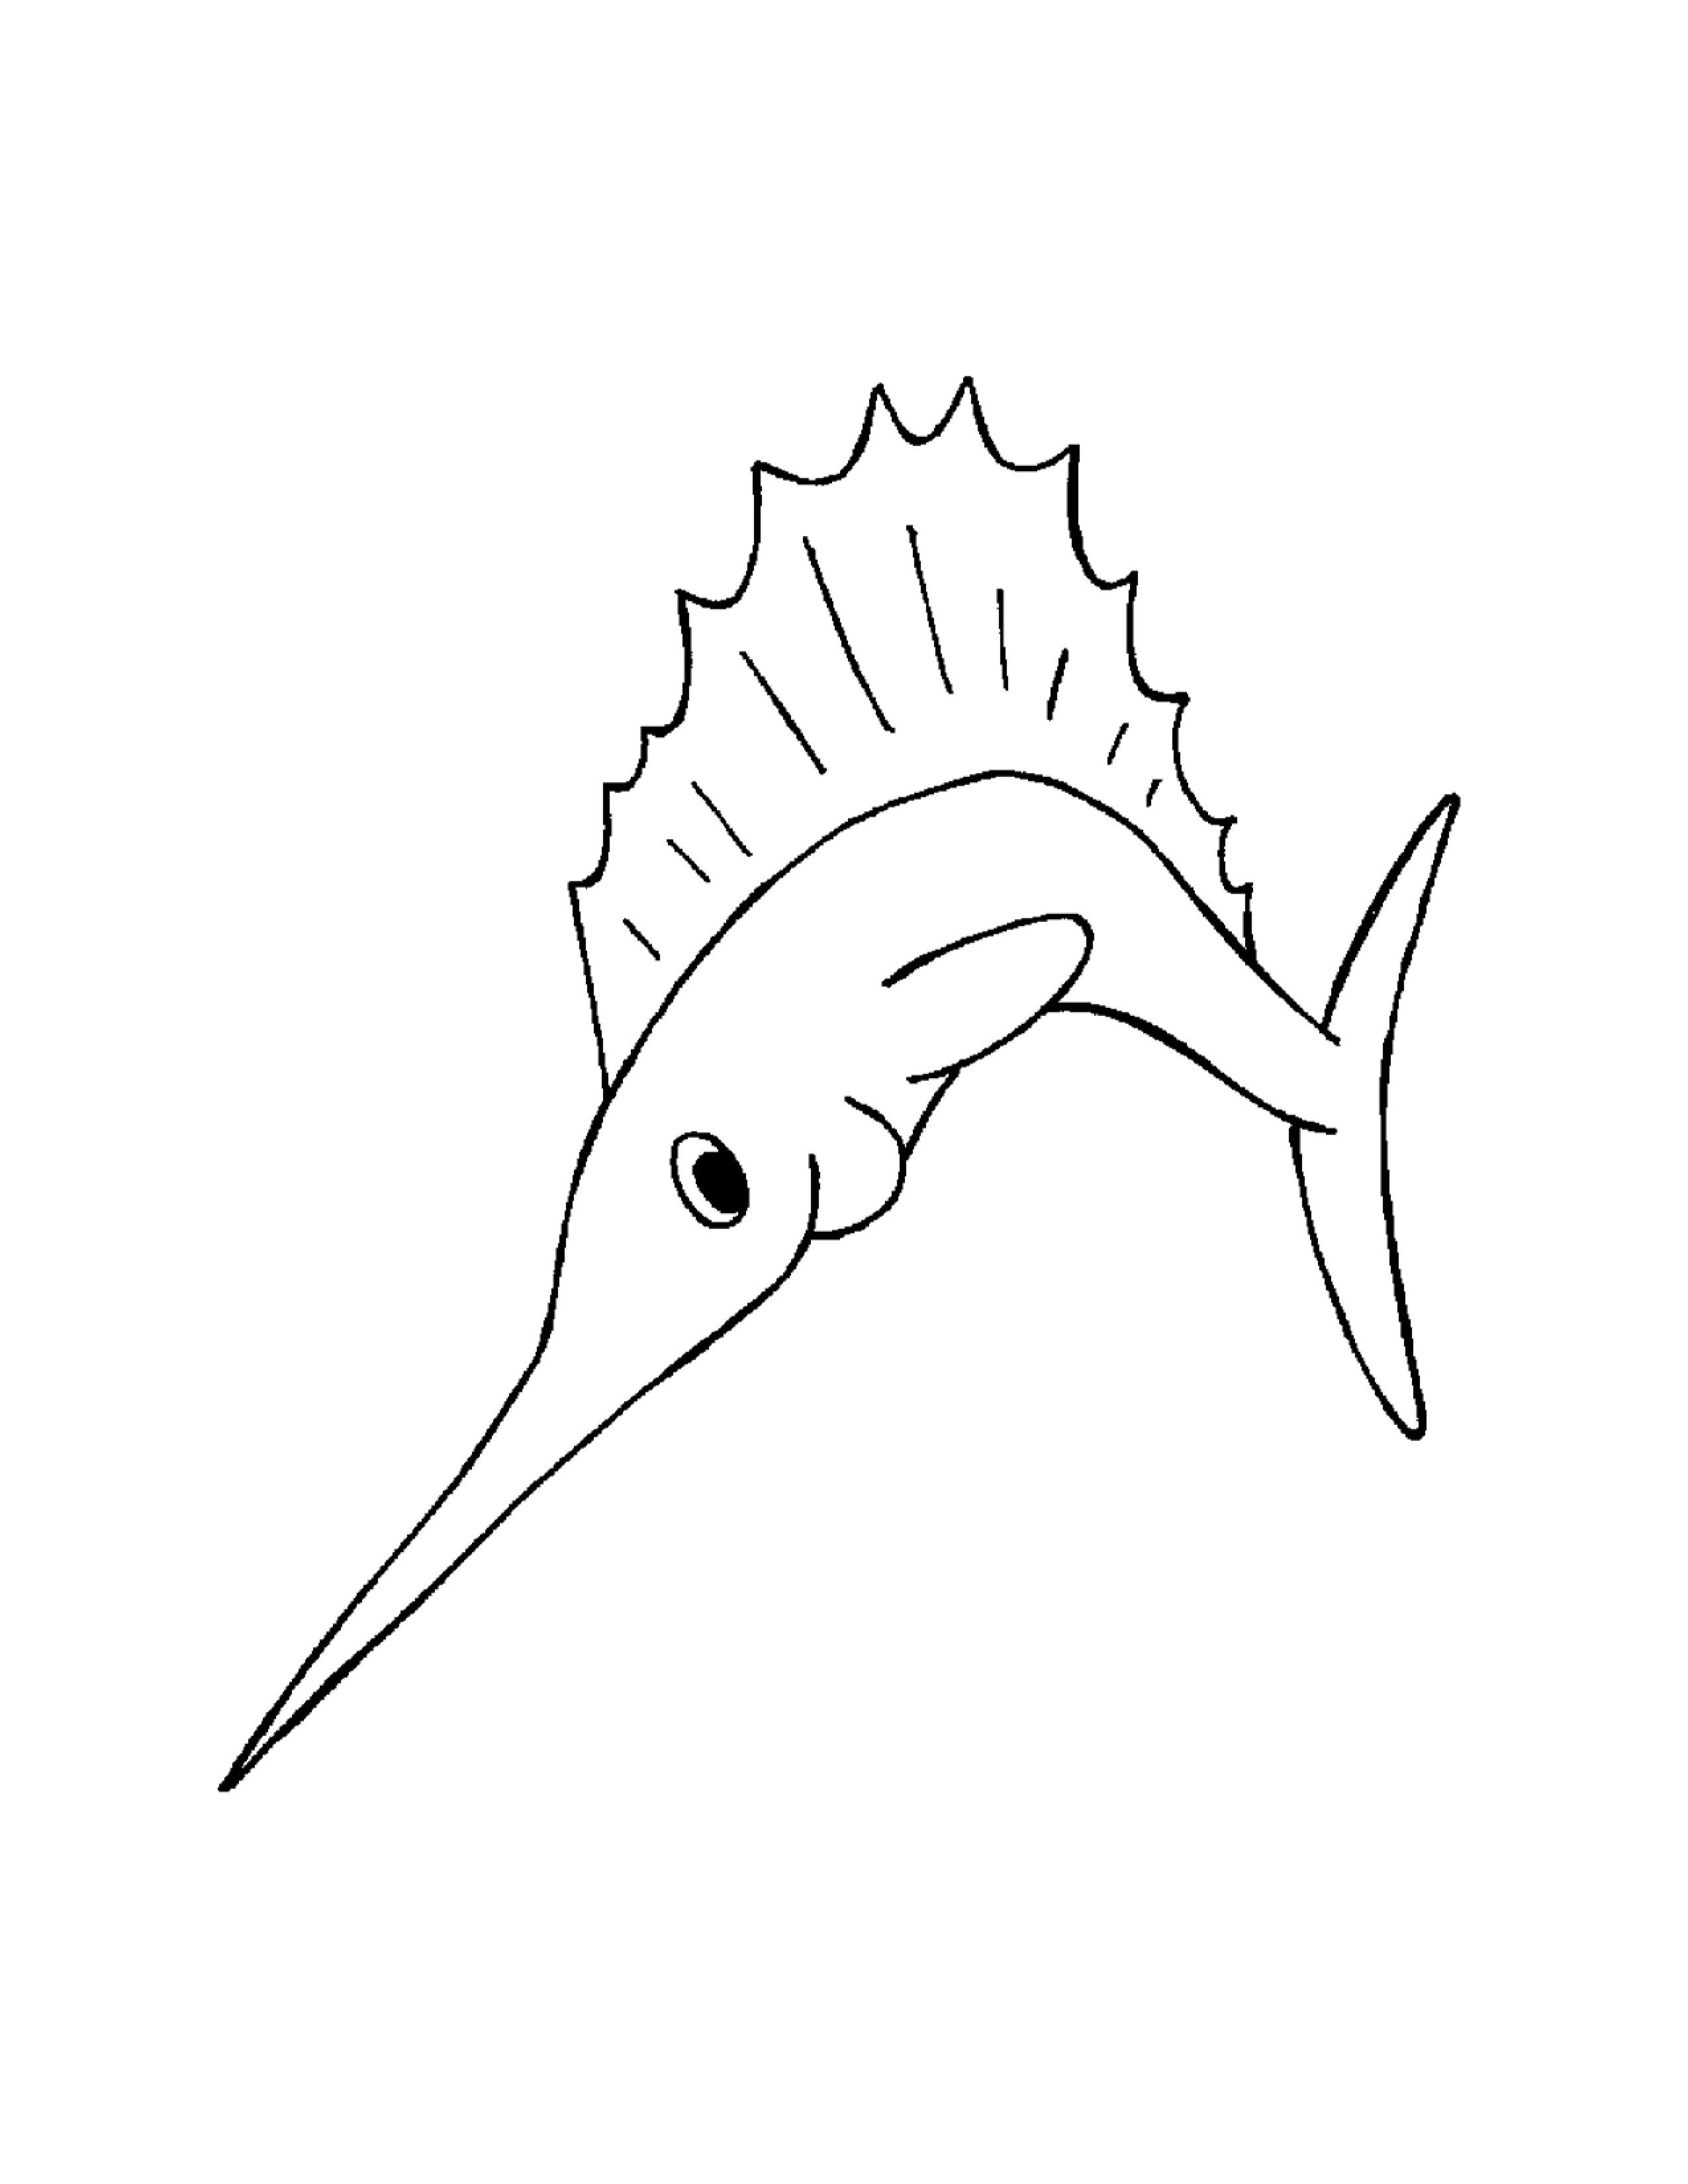 sea fish coloring book Fish coloring page, Coloring